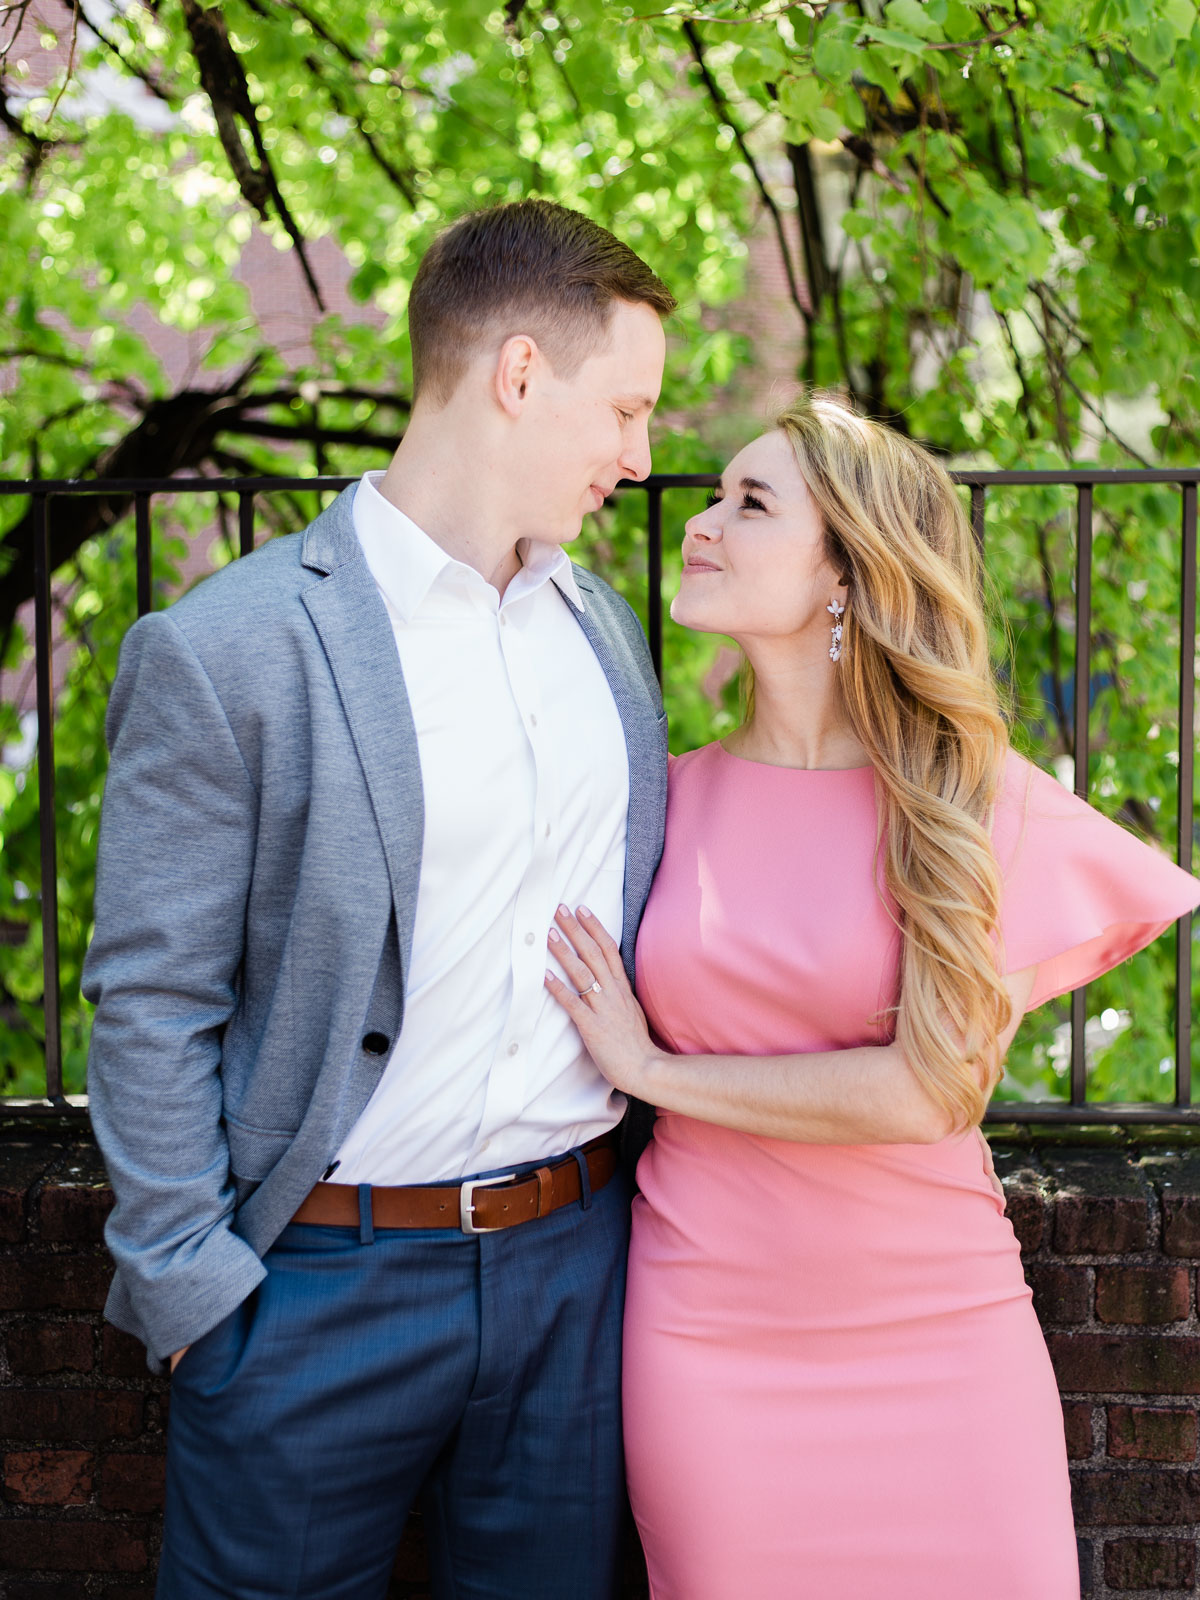 Stylish Summer Engagement Session in Downtown Boston-26.jpg